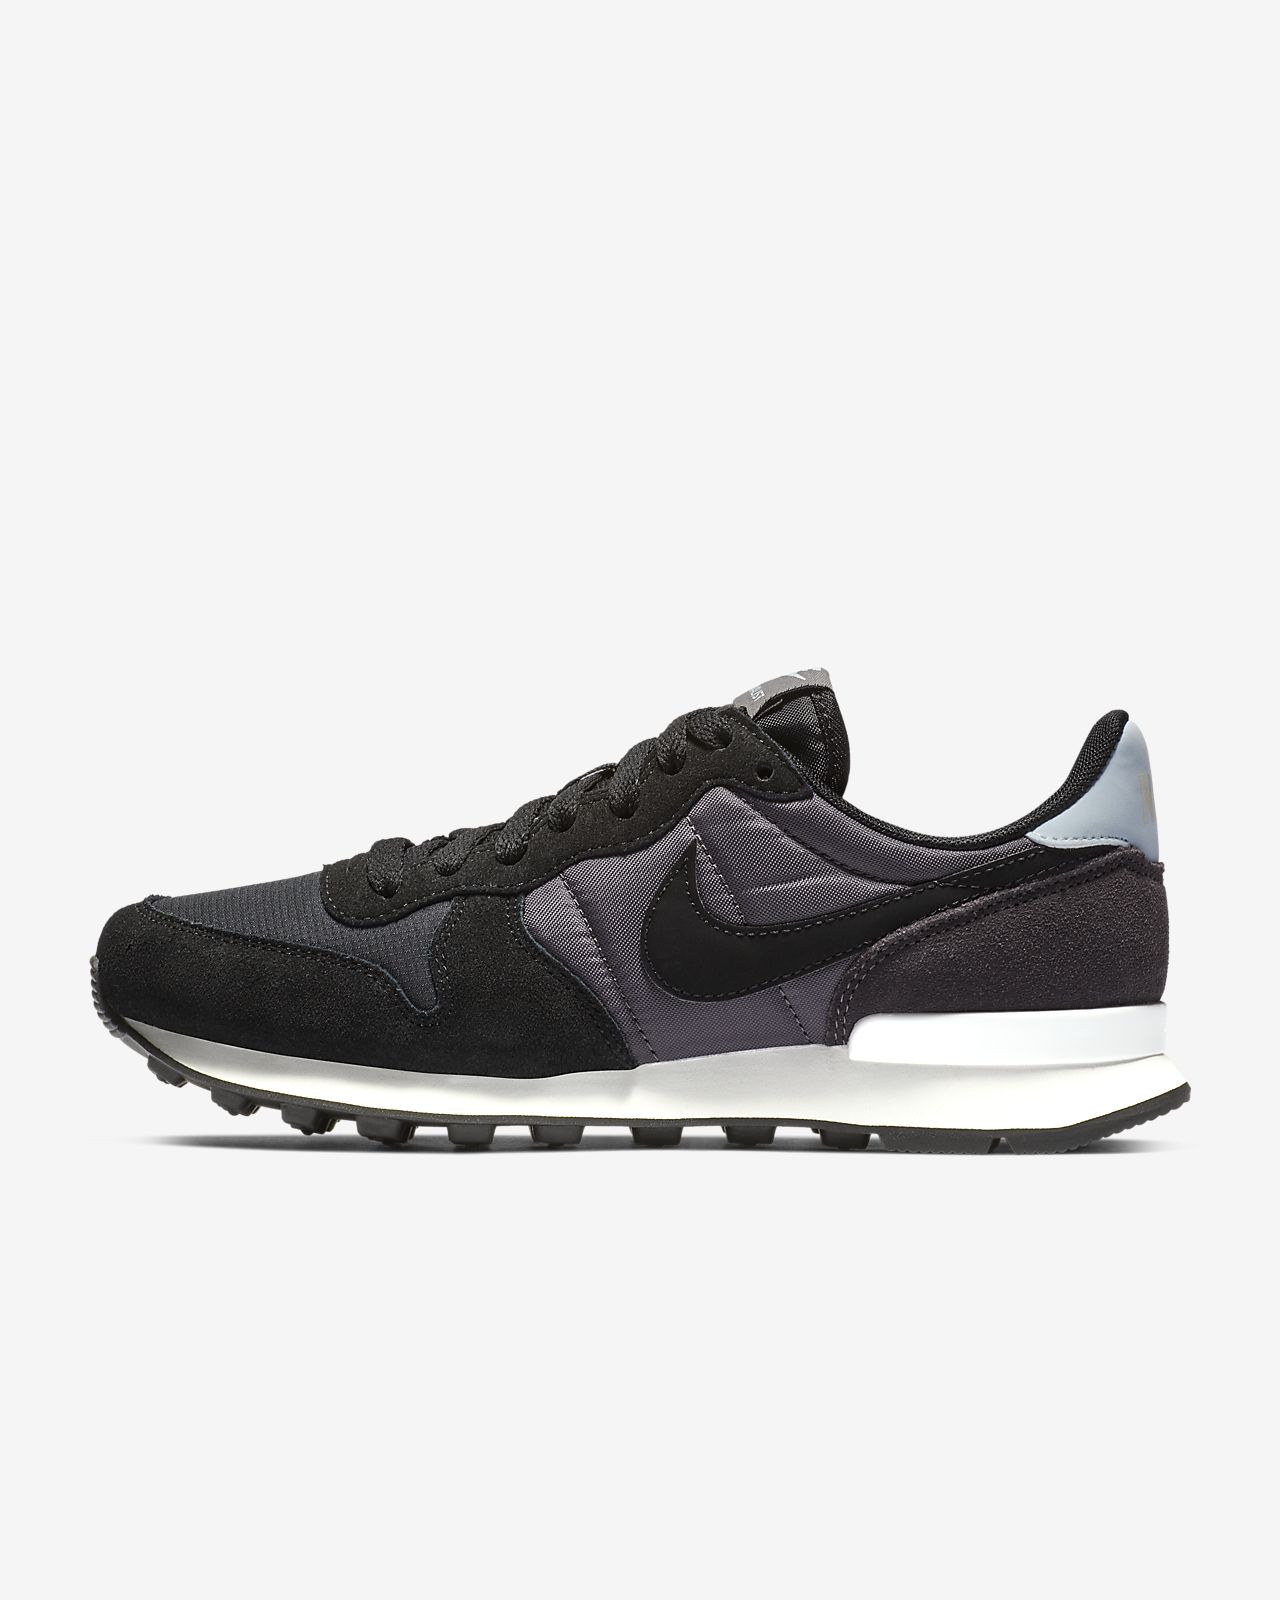 online store 95e78 d8851 Low Resolution Scarpa Nike Internationalist - Donna Scarpa Nike  Internationalist - Donna